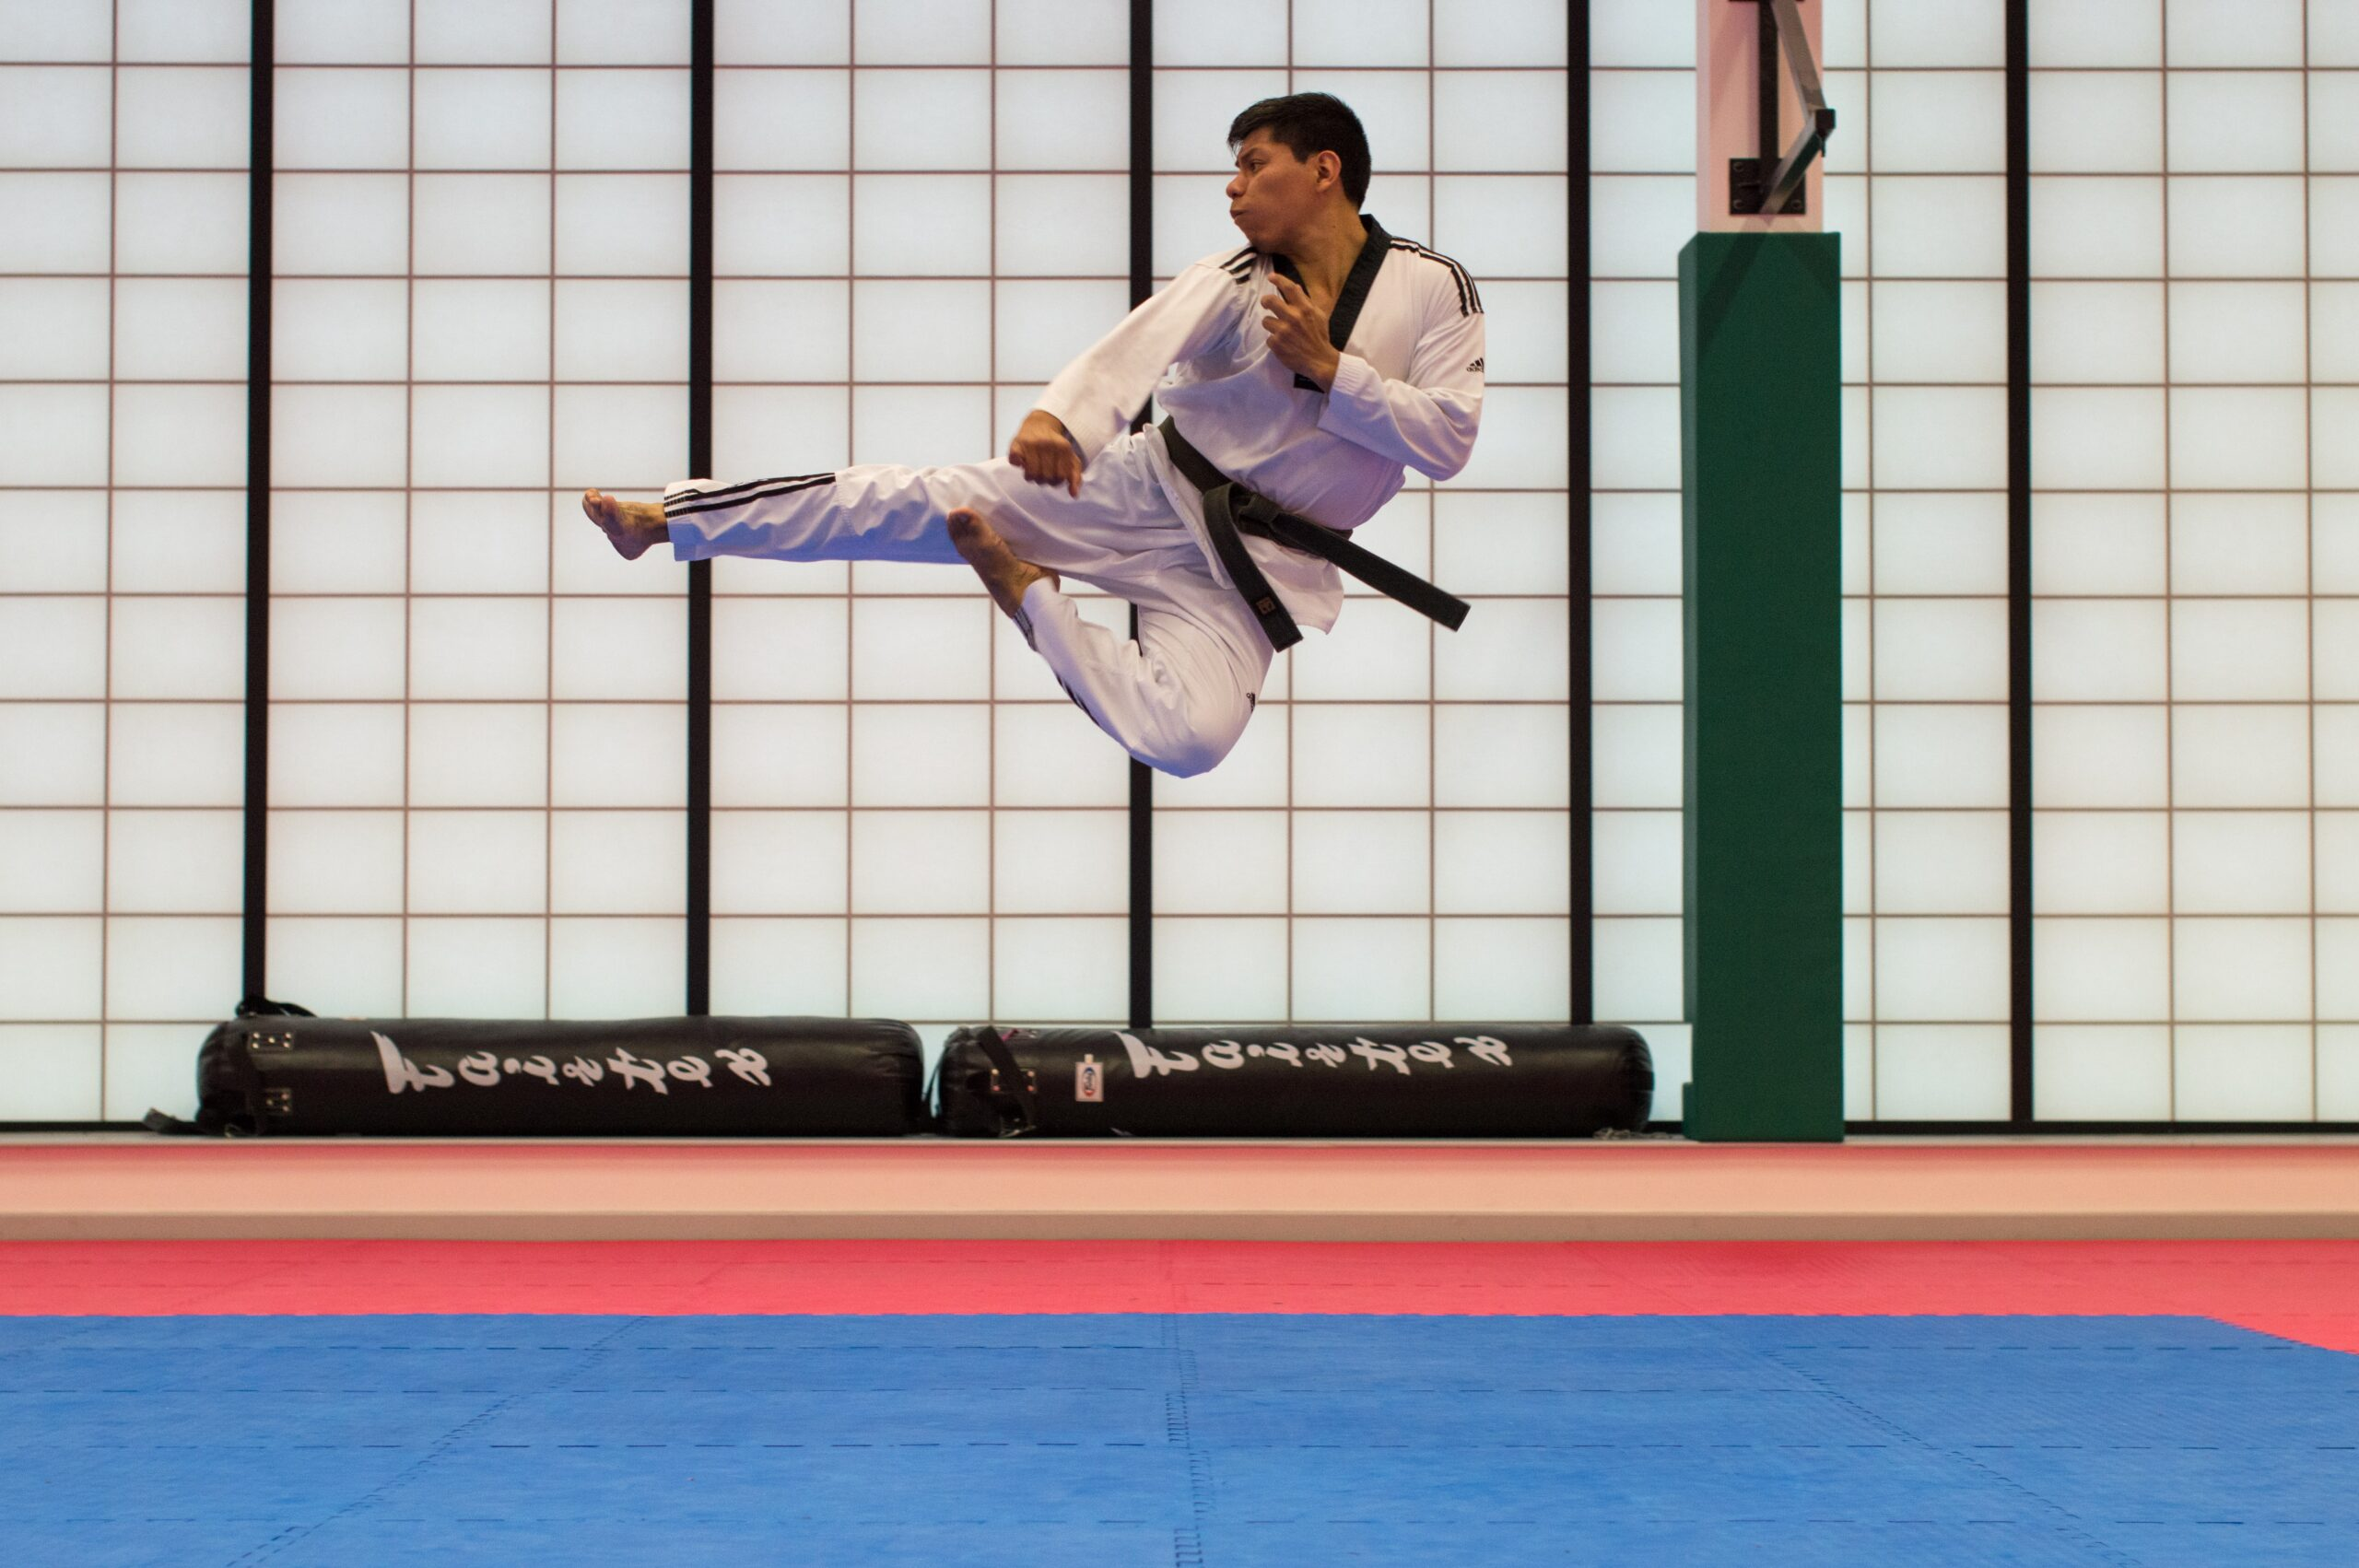 career change - understanding the full impact. Picture of a blackbelt man doing a high kick in the air